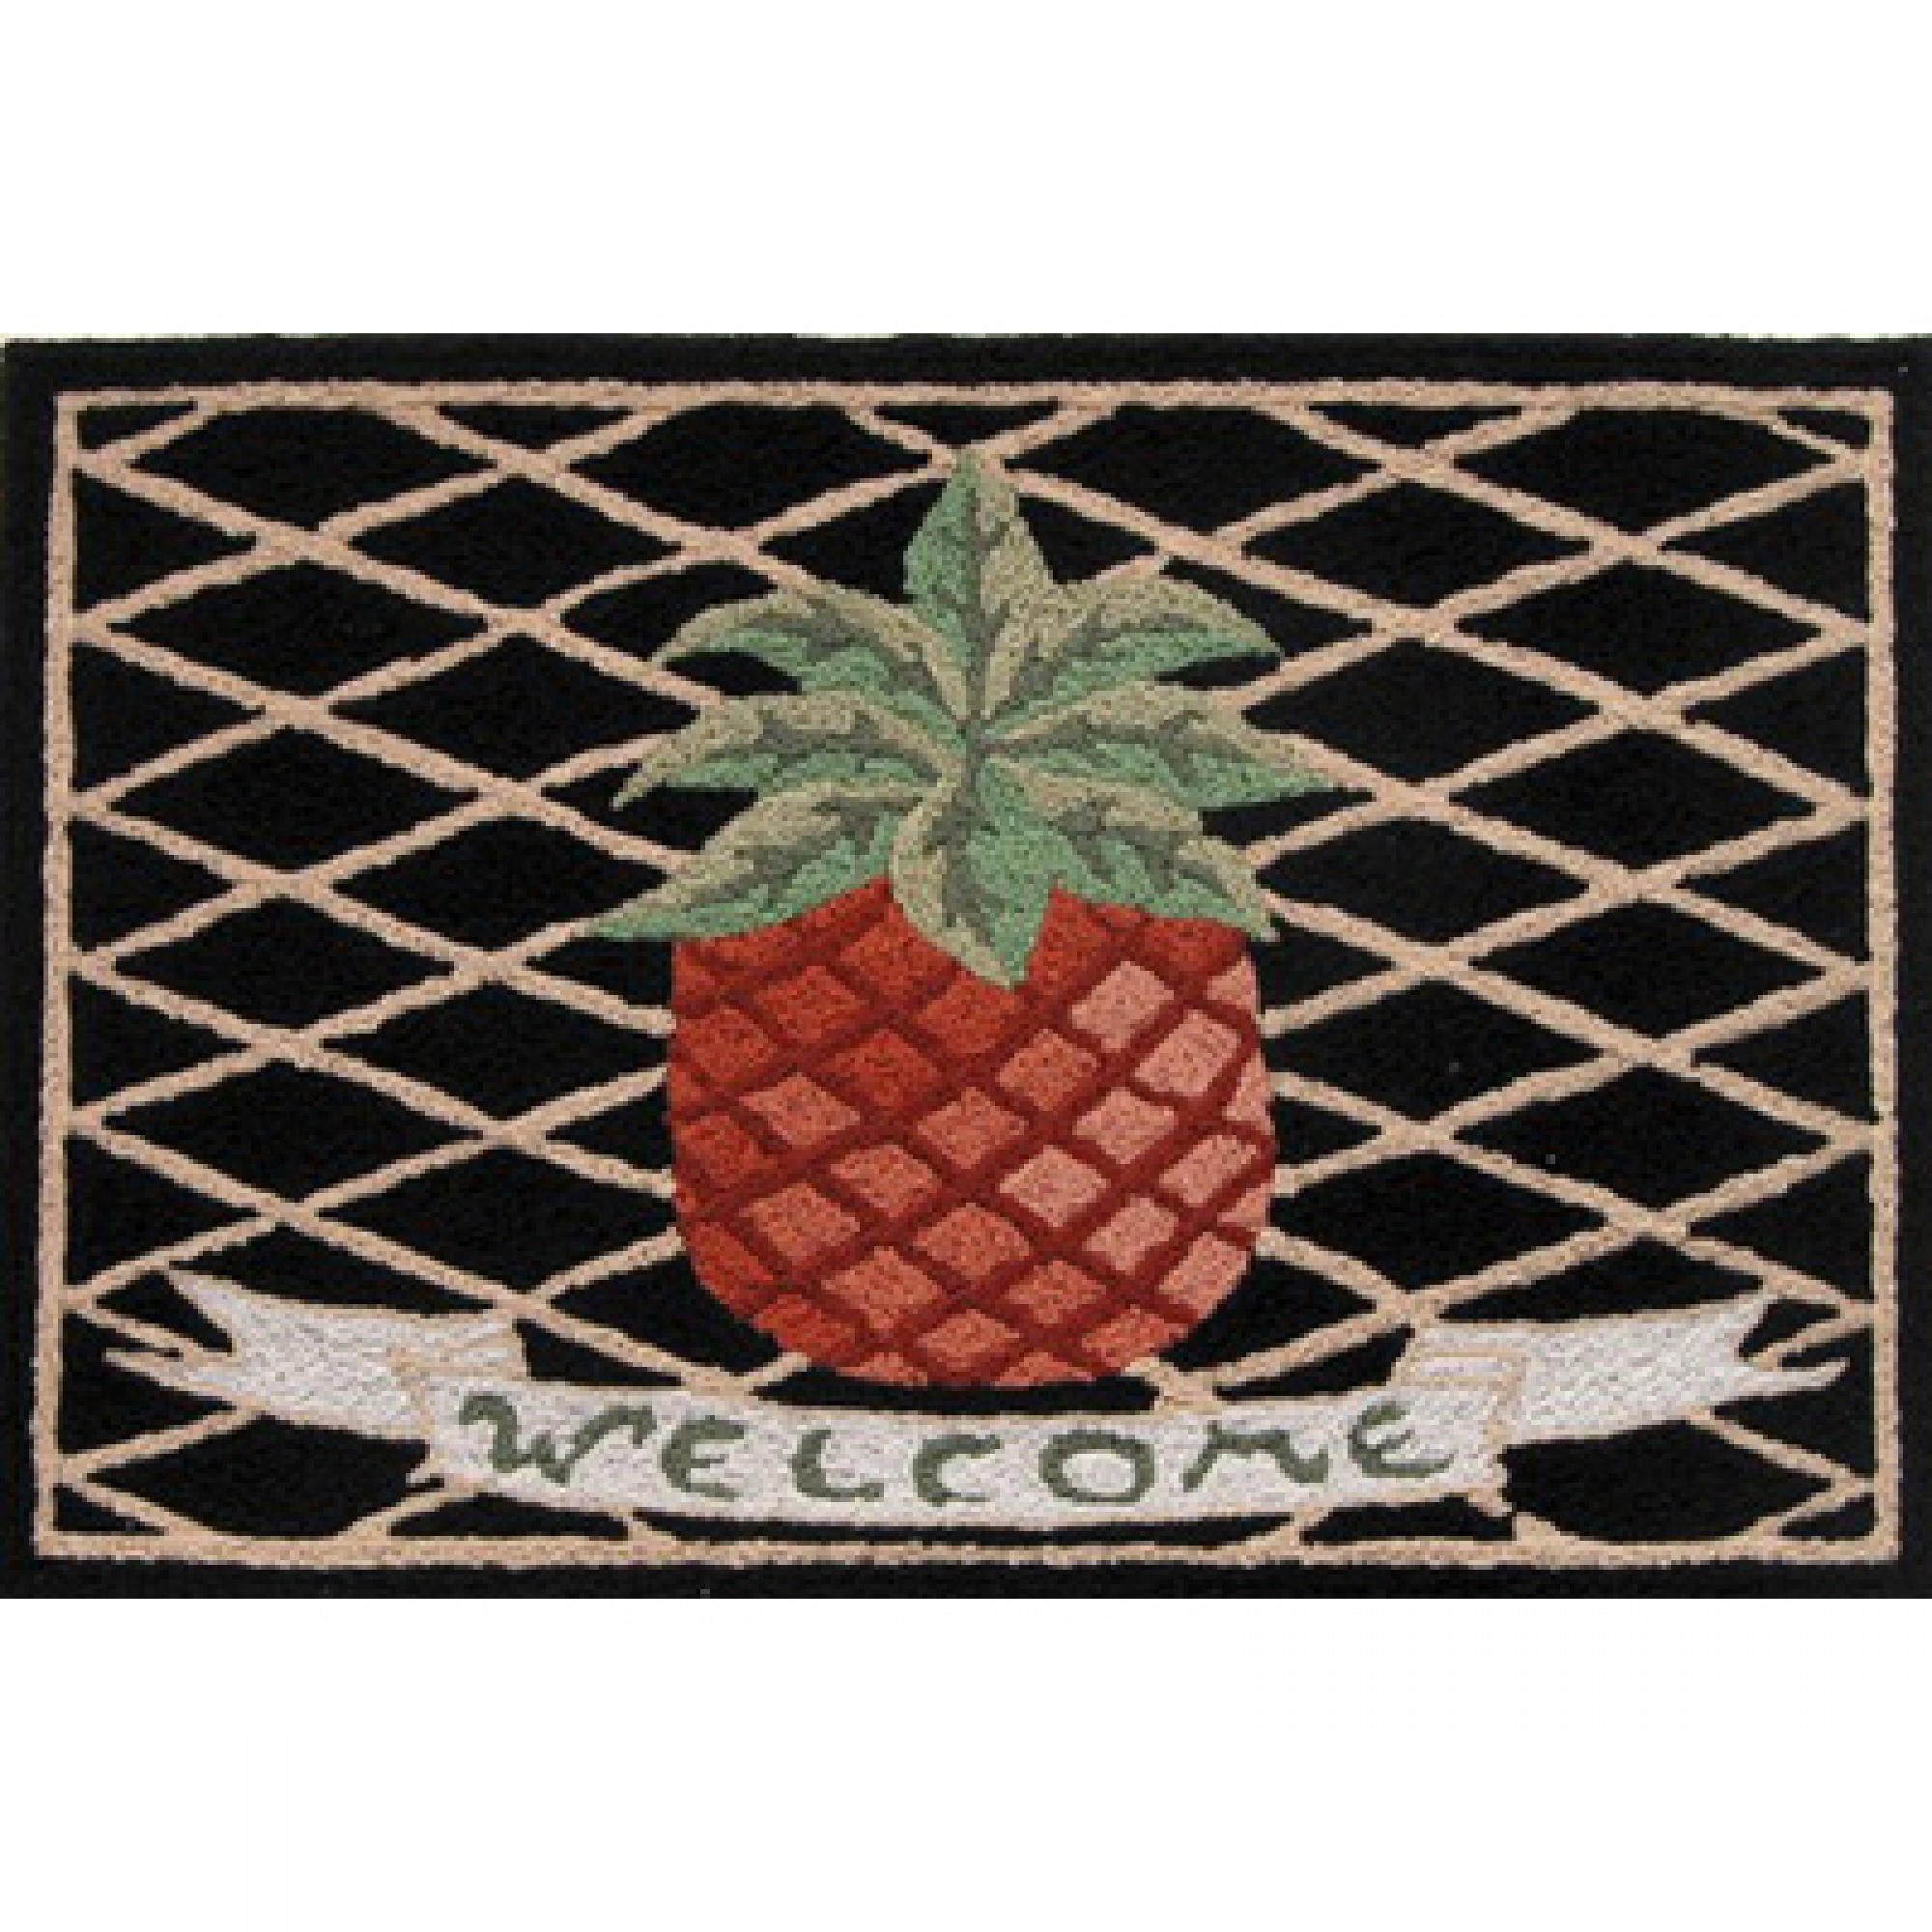 Jb Lighting Usa Shop Jellybean Pineapple Welcome Outdoor Door Mat